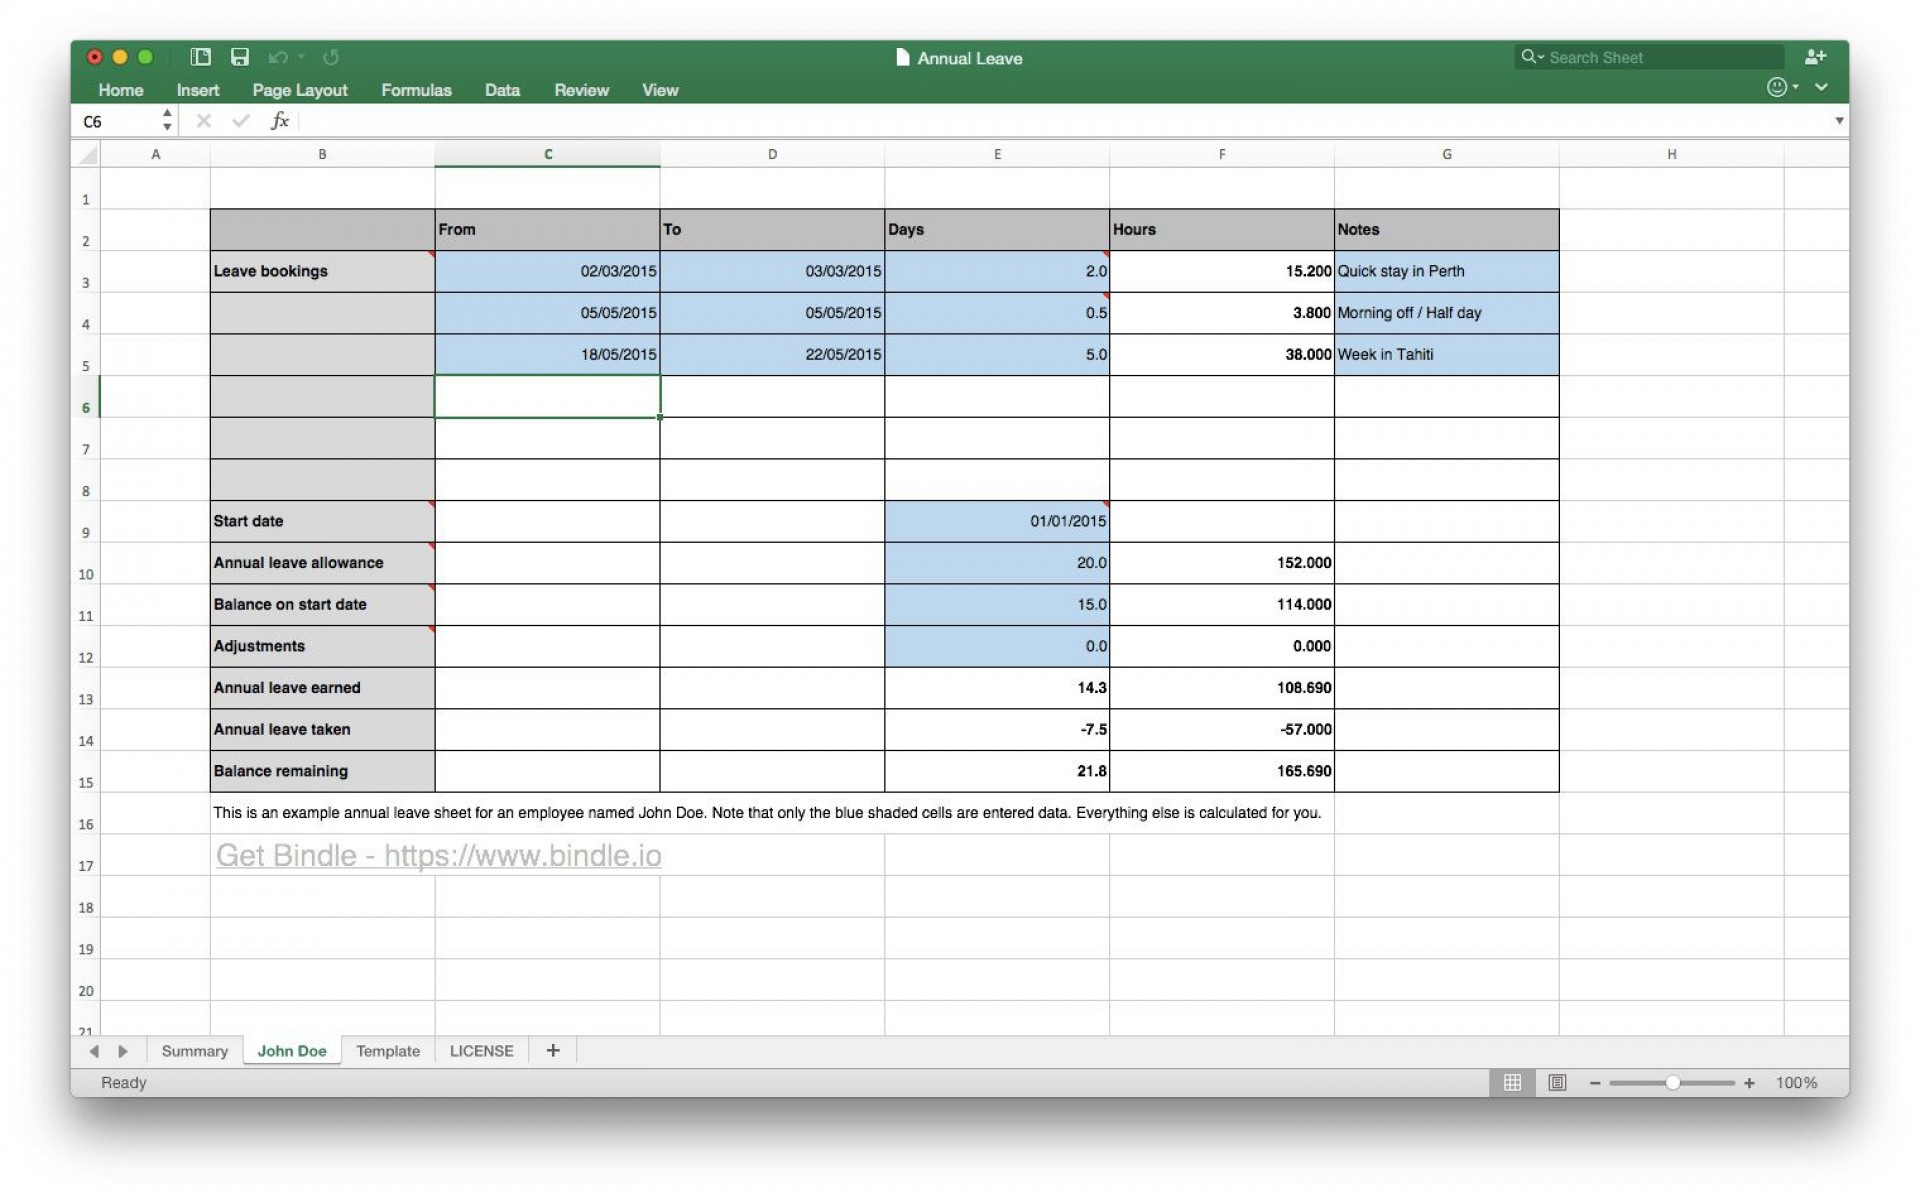 007 Stirring Excel Pto Tracker Template High Resolution  Employee Vacation Spreadsheet 2019 Free1920